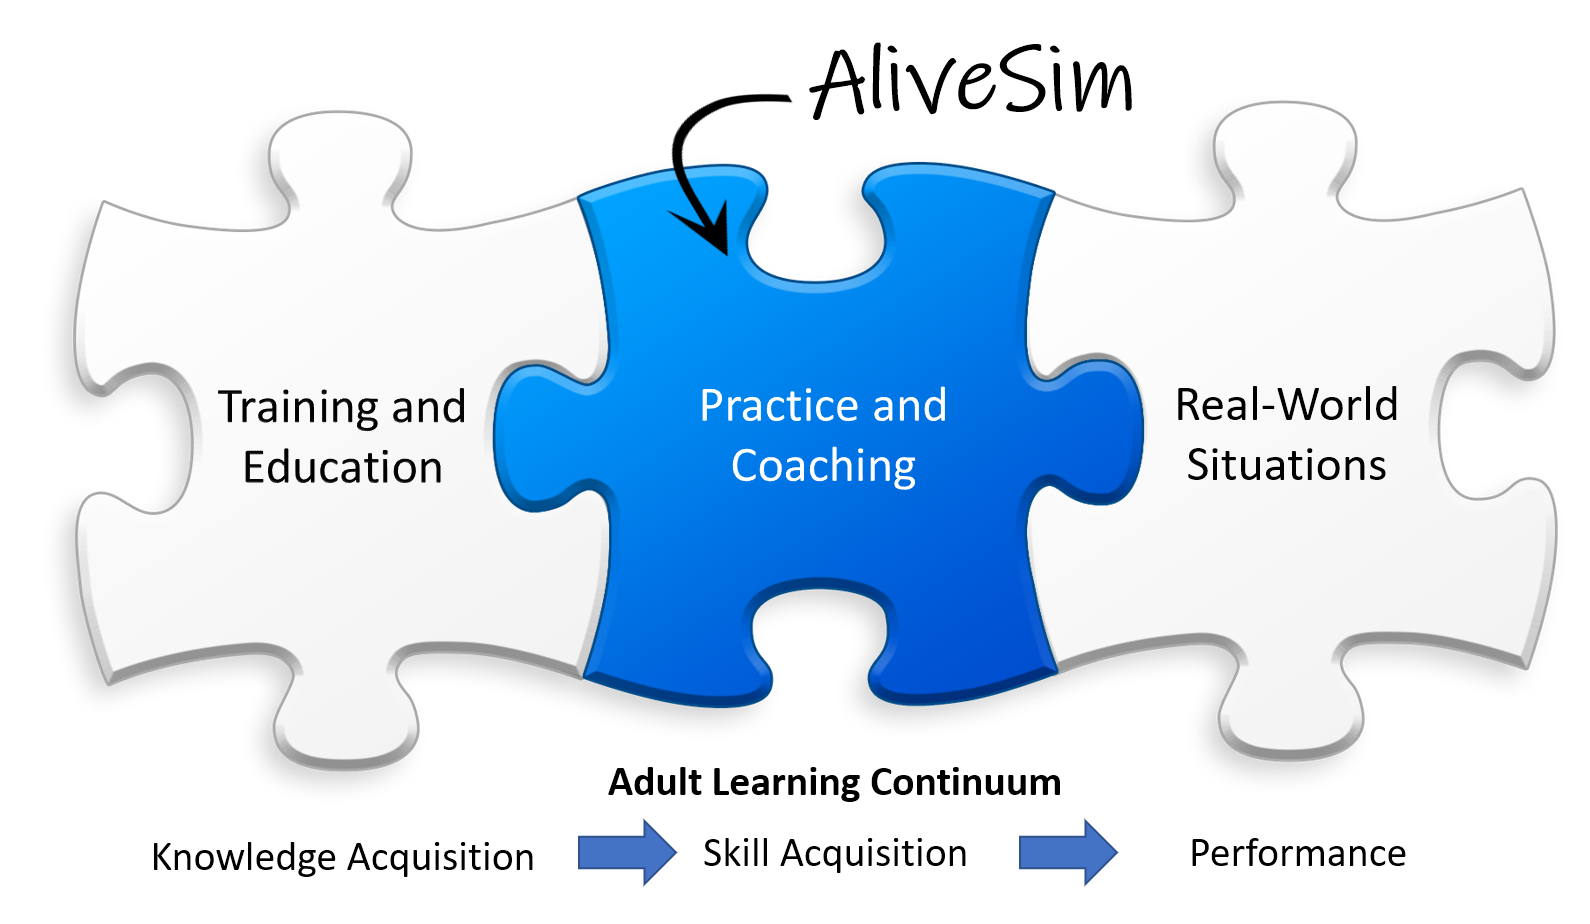 How practice and coaching is the missing between training and real-world performance